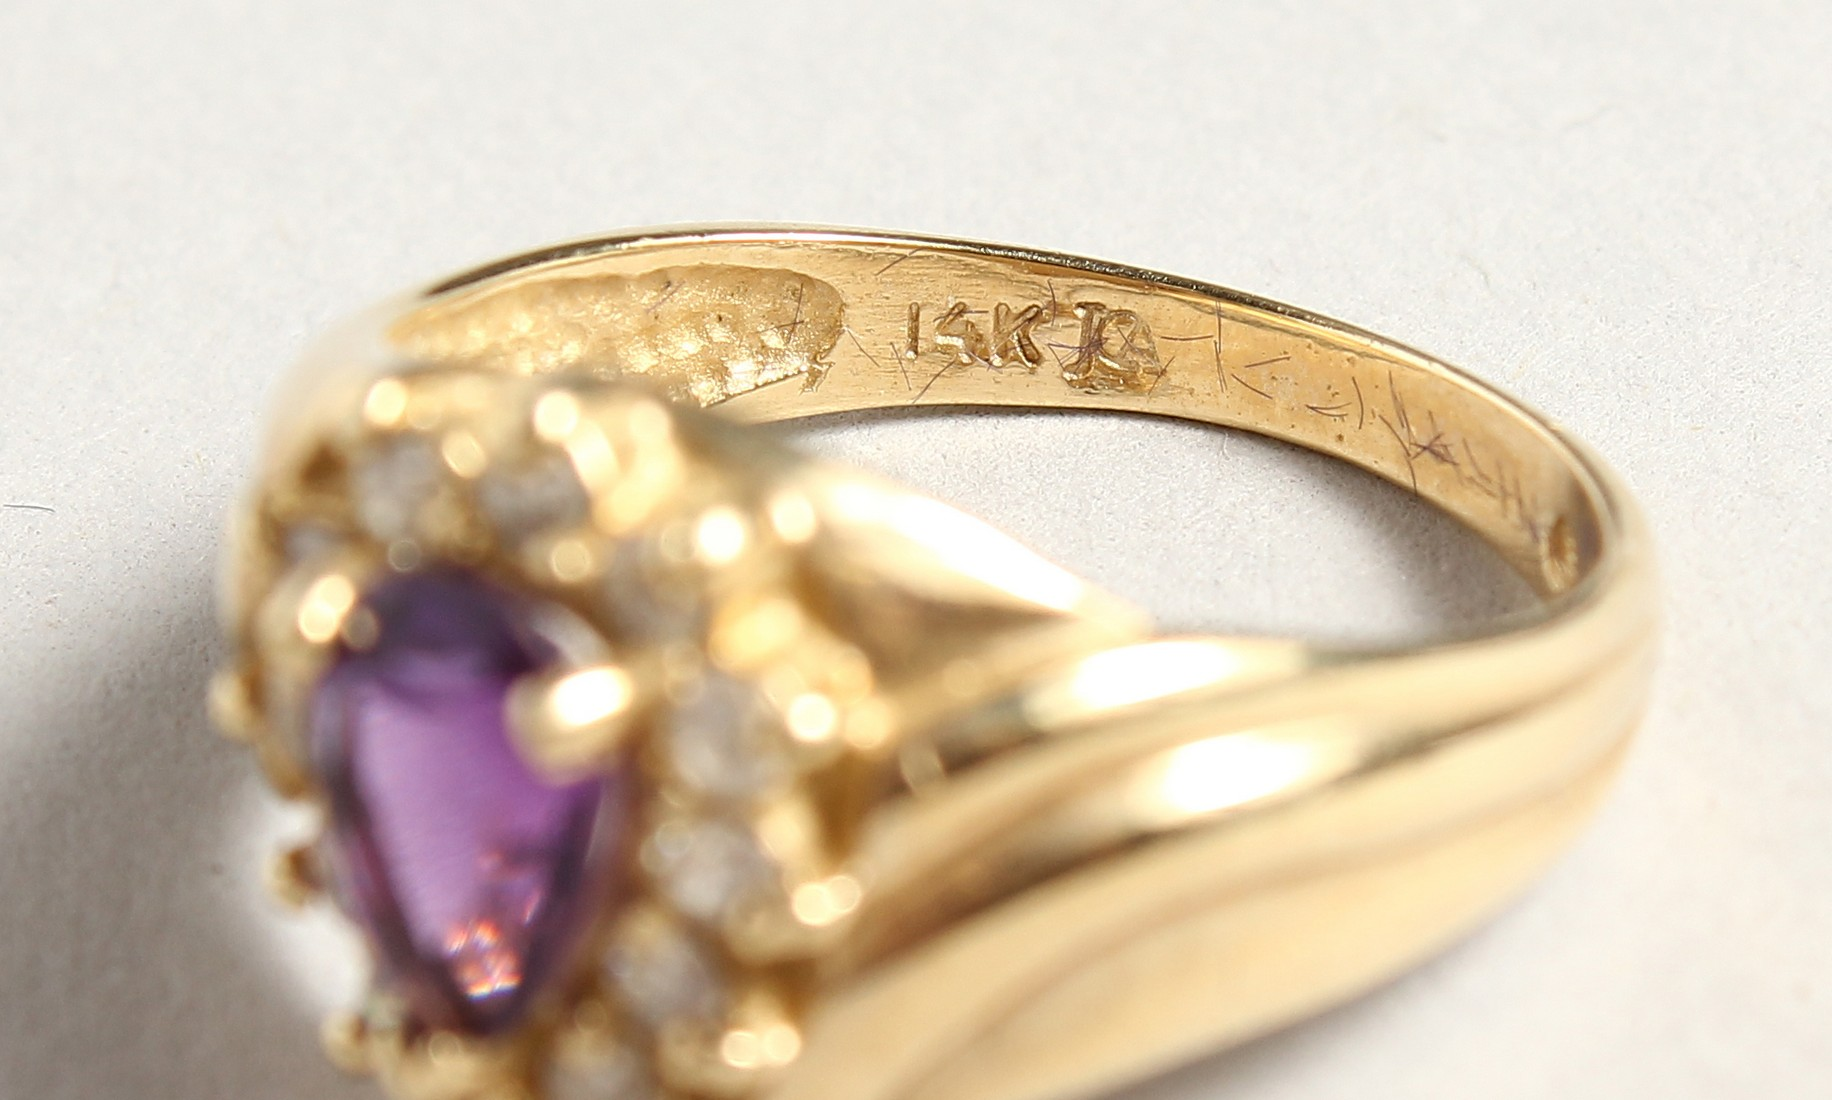 A 14CT GOLD, AMETHYST AND DIAMOND TEAR DROP RING - Image 4 of 4